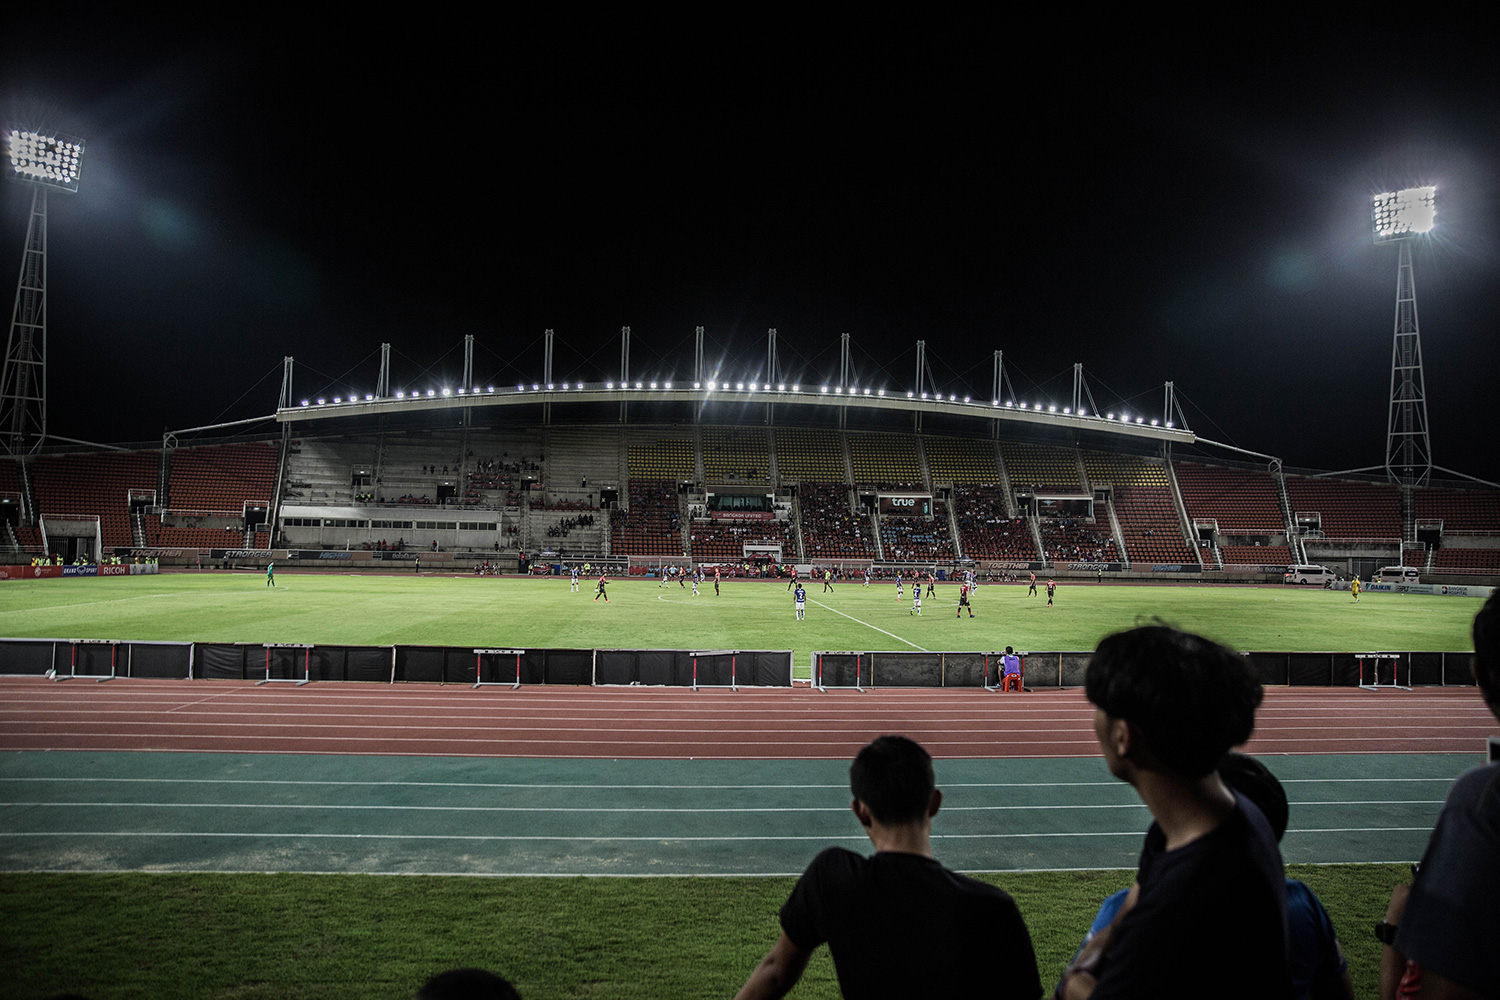 bangkokunited-vs-chonburi-15